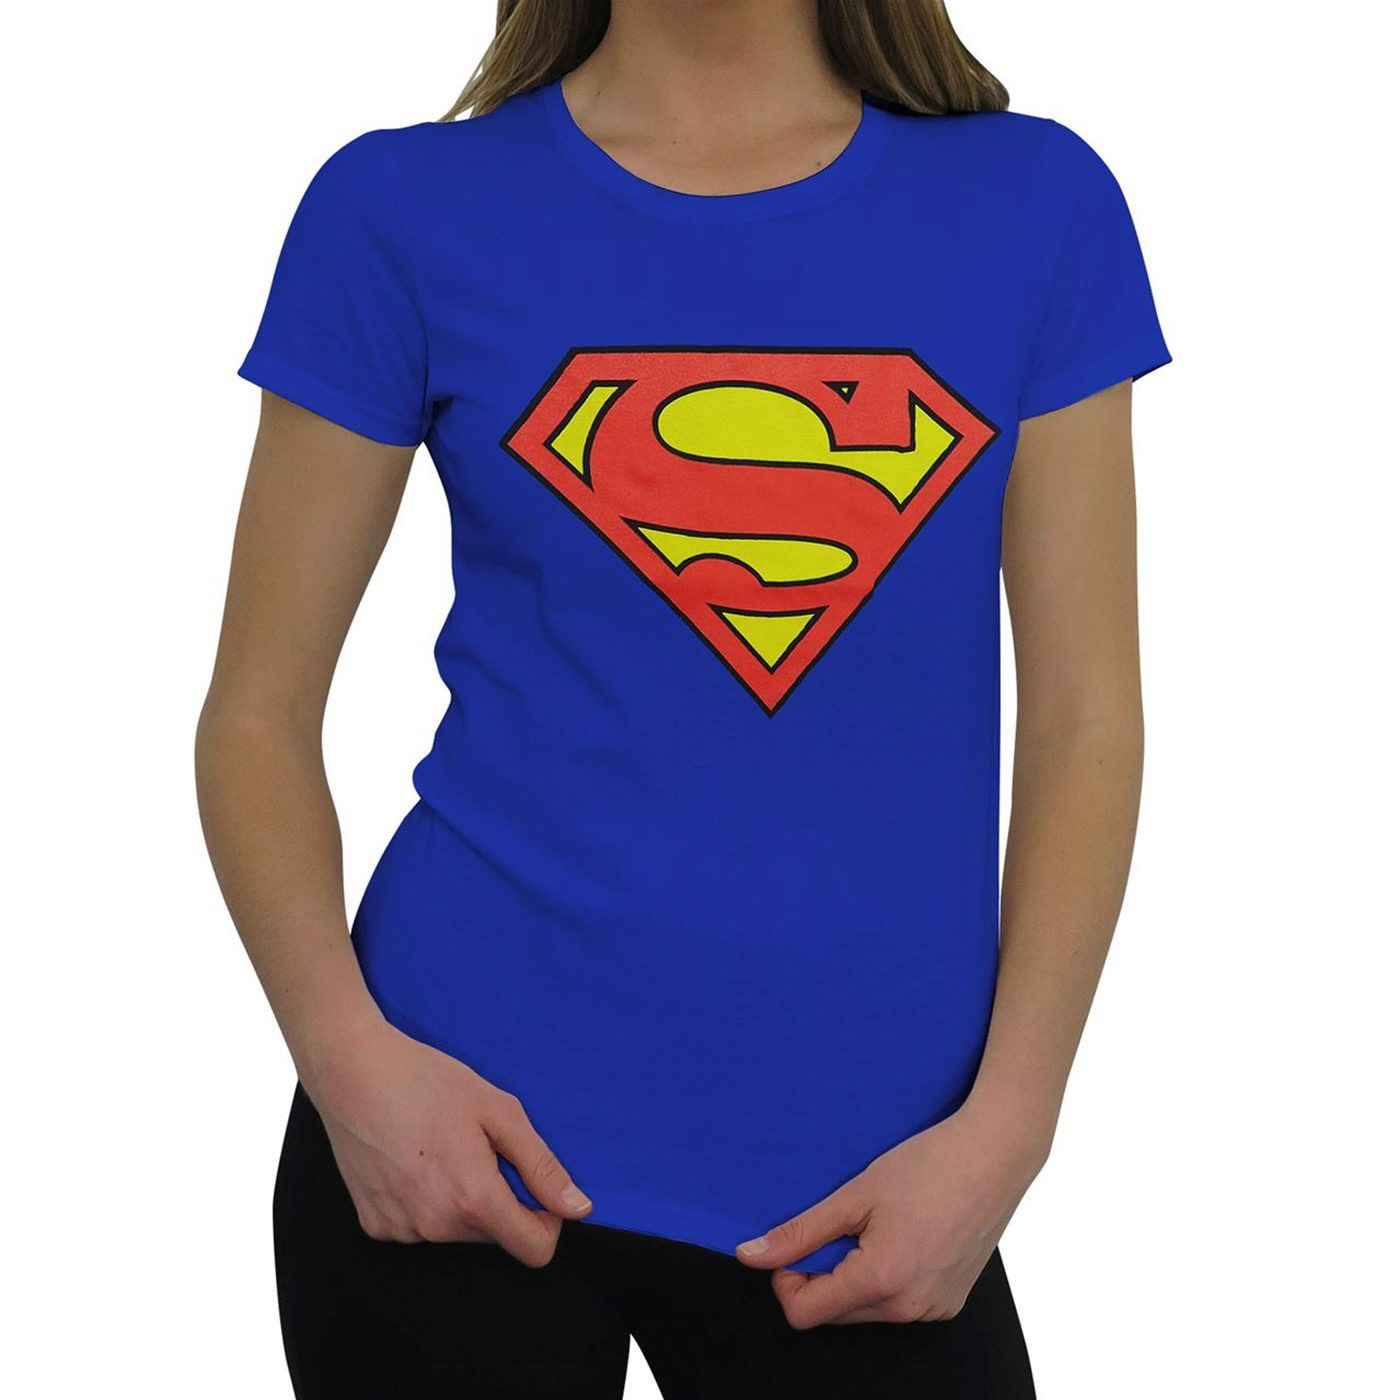 Superman Women's Symbol T-Shirt